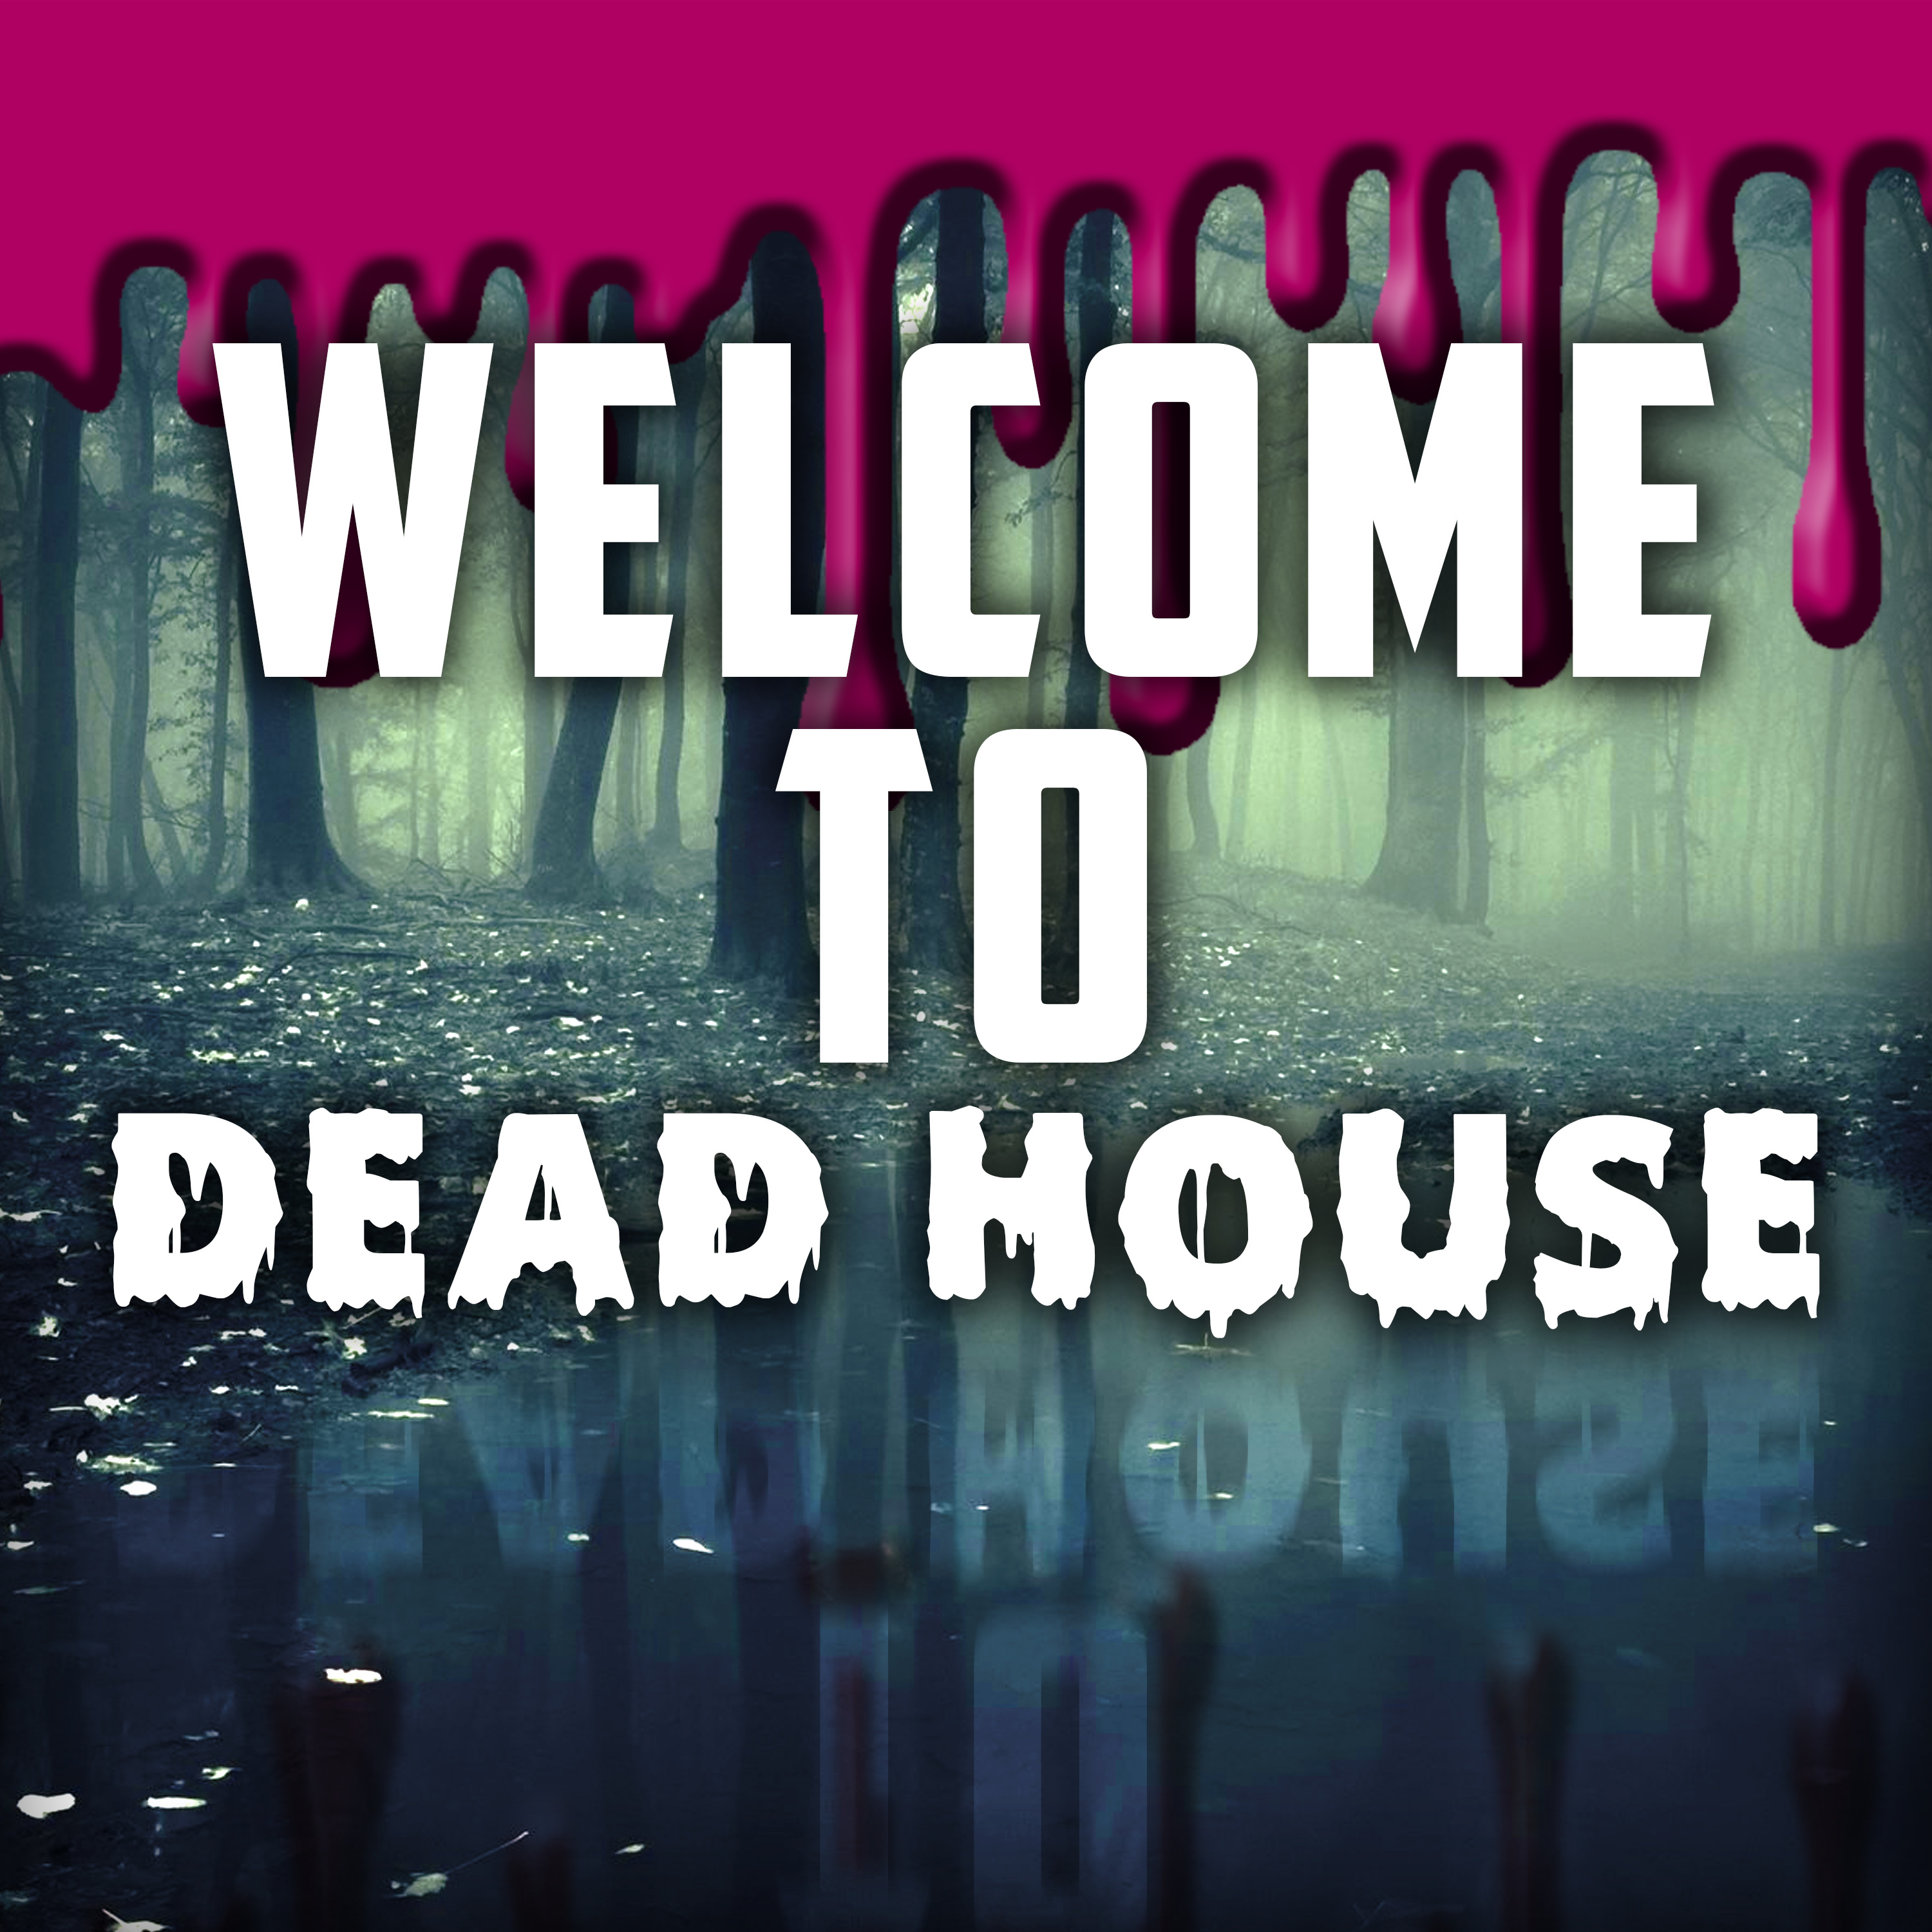 2: The House With A Welcome Mat